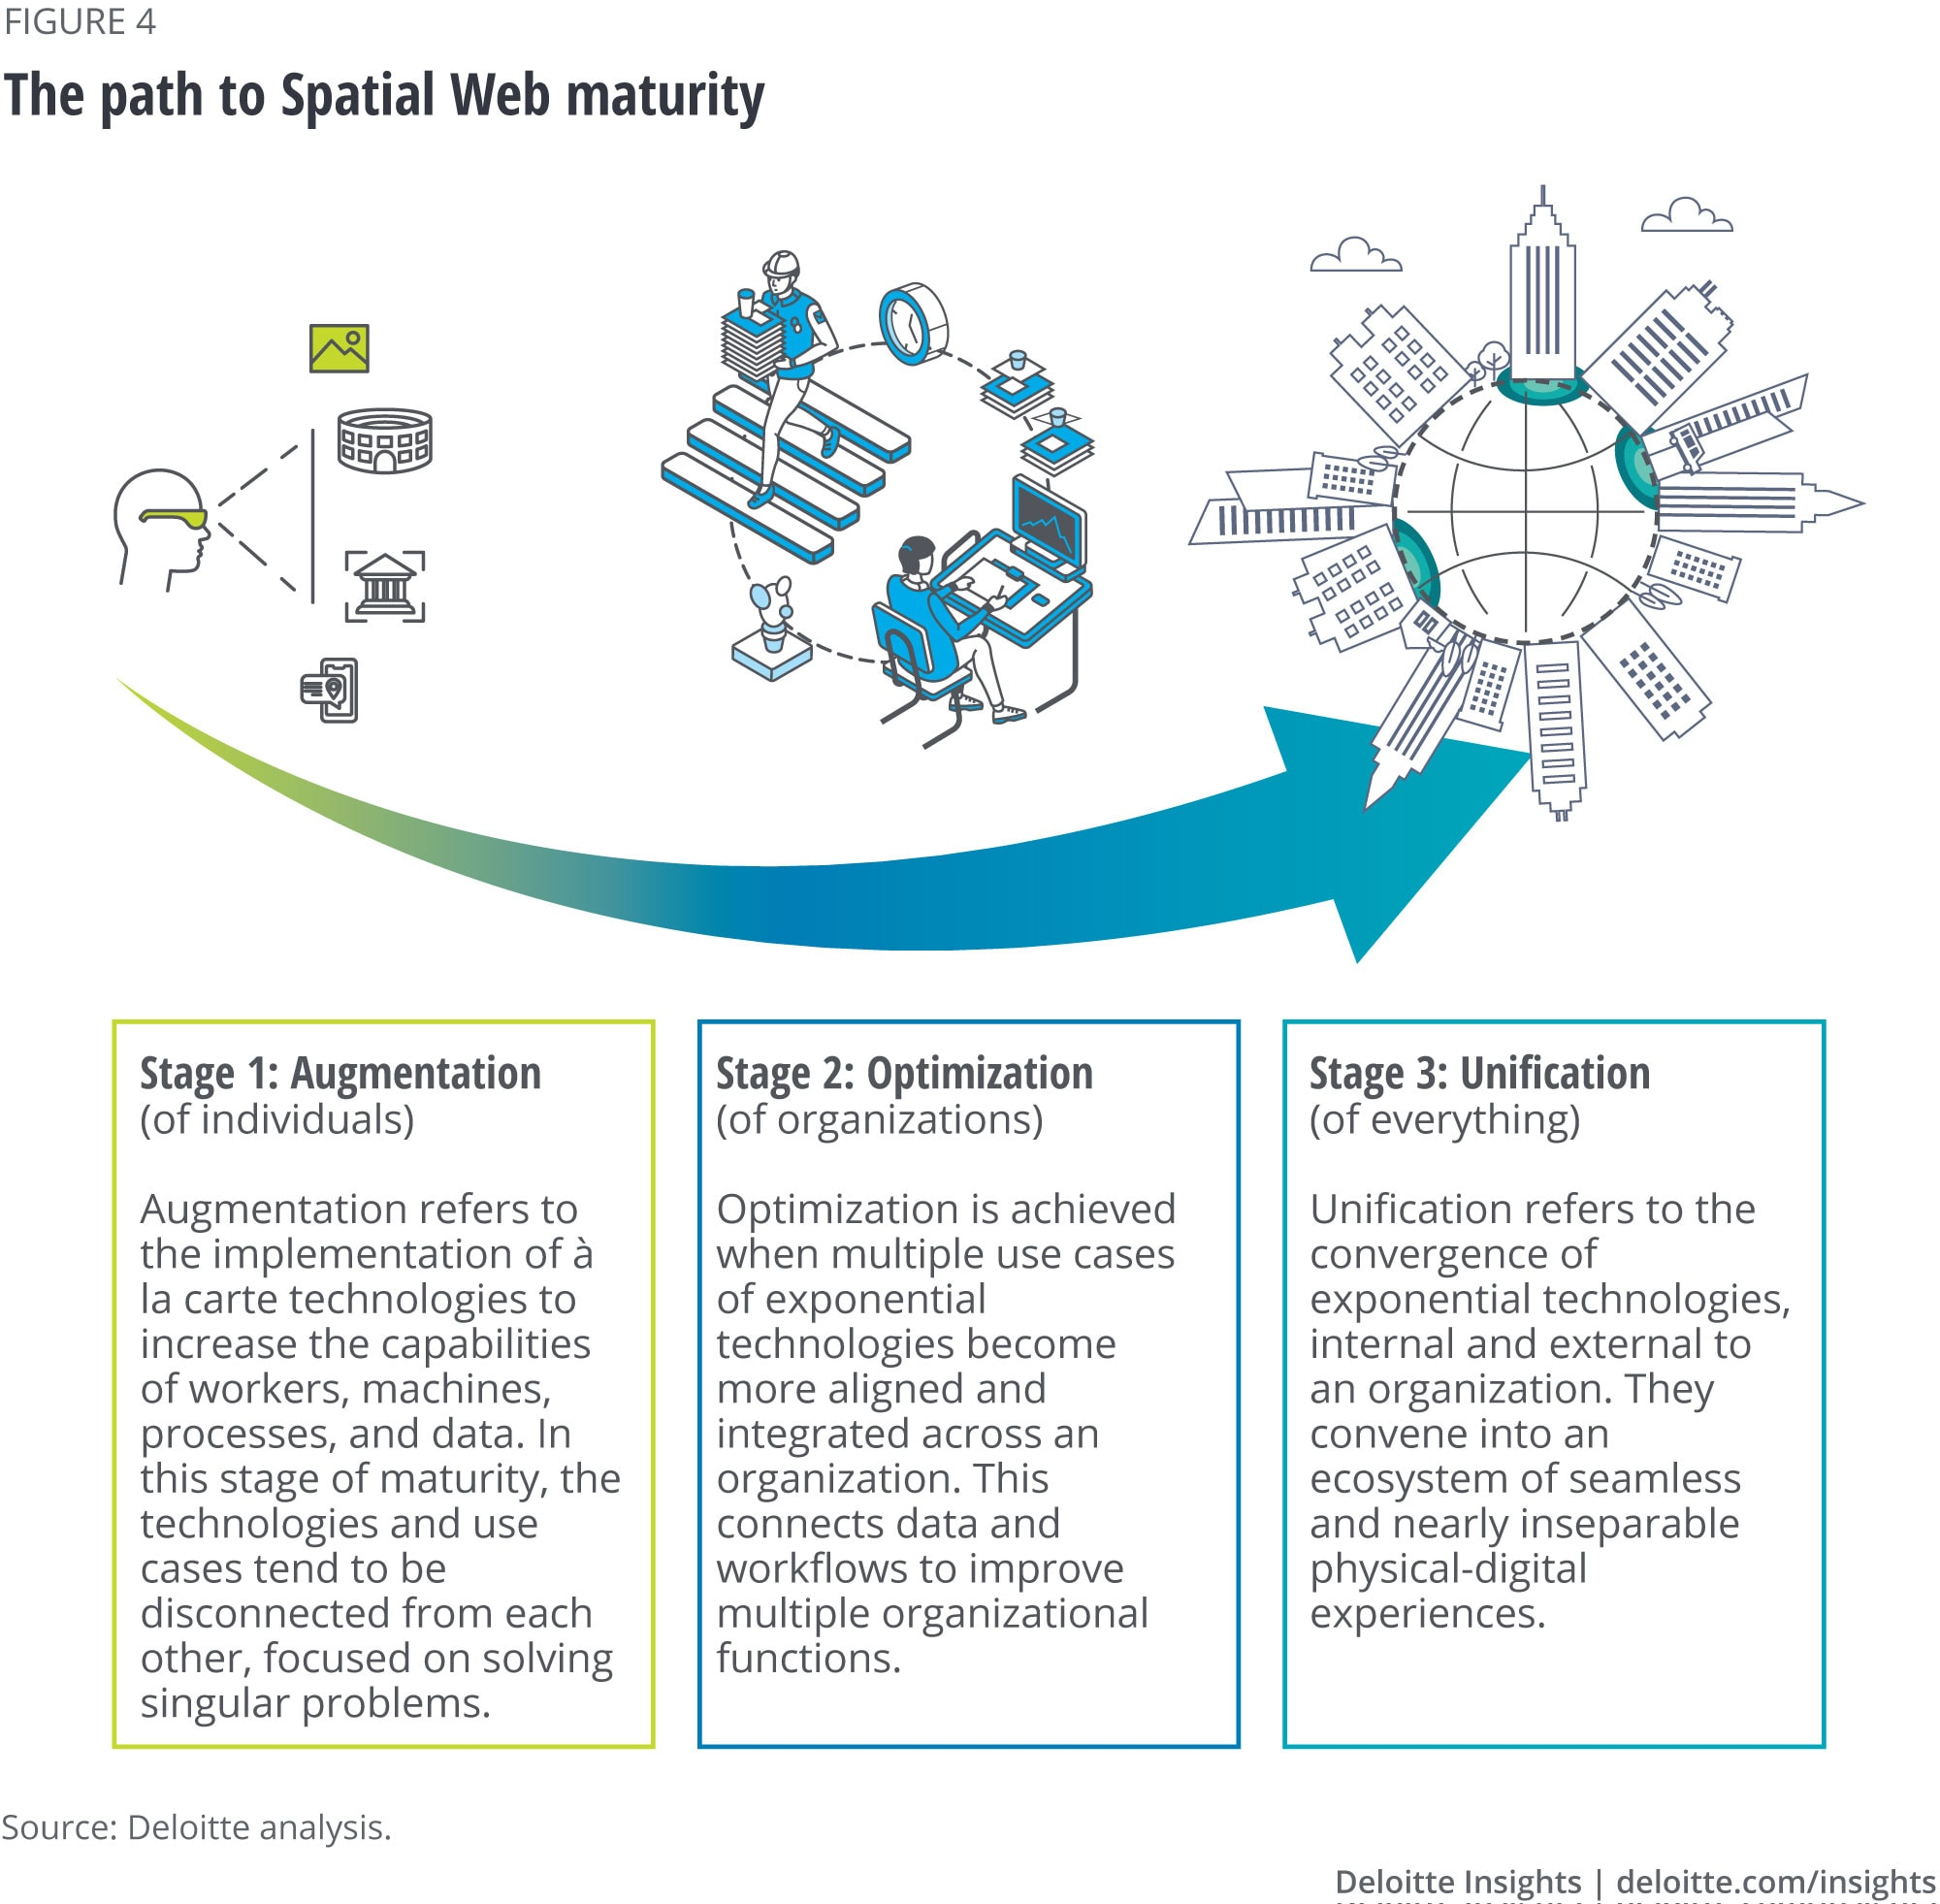 The path to Spatial Web maturity